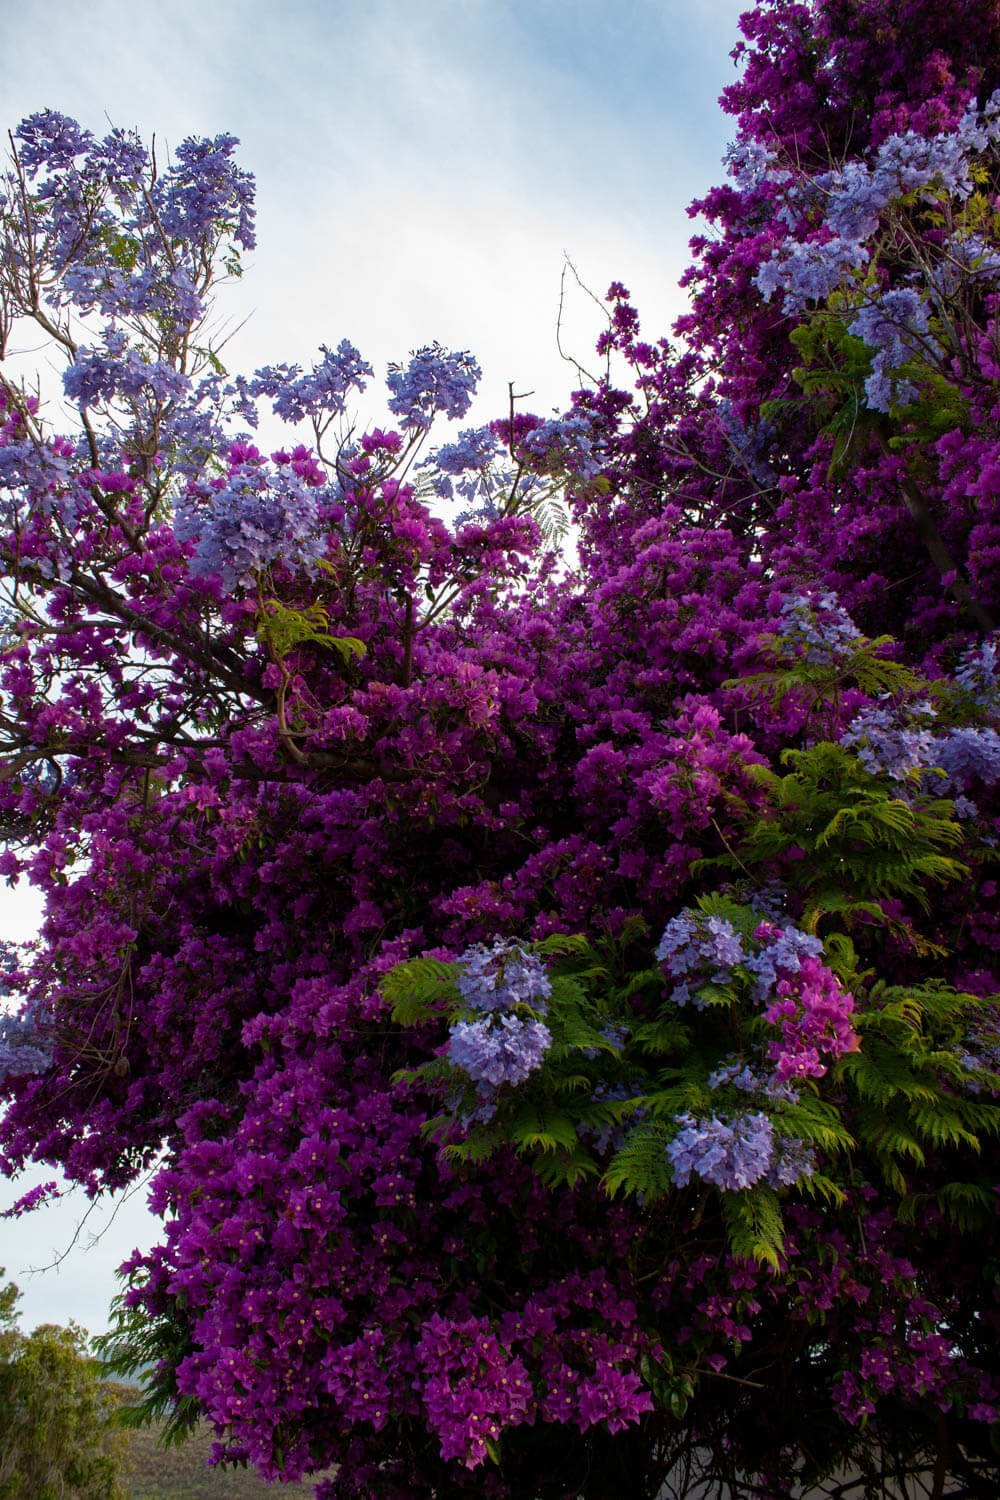 Explosion of flowers on a tree in Barrydale